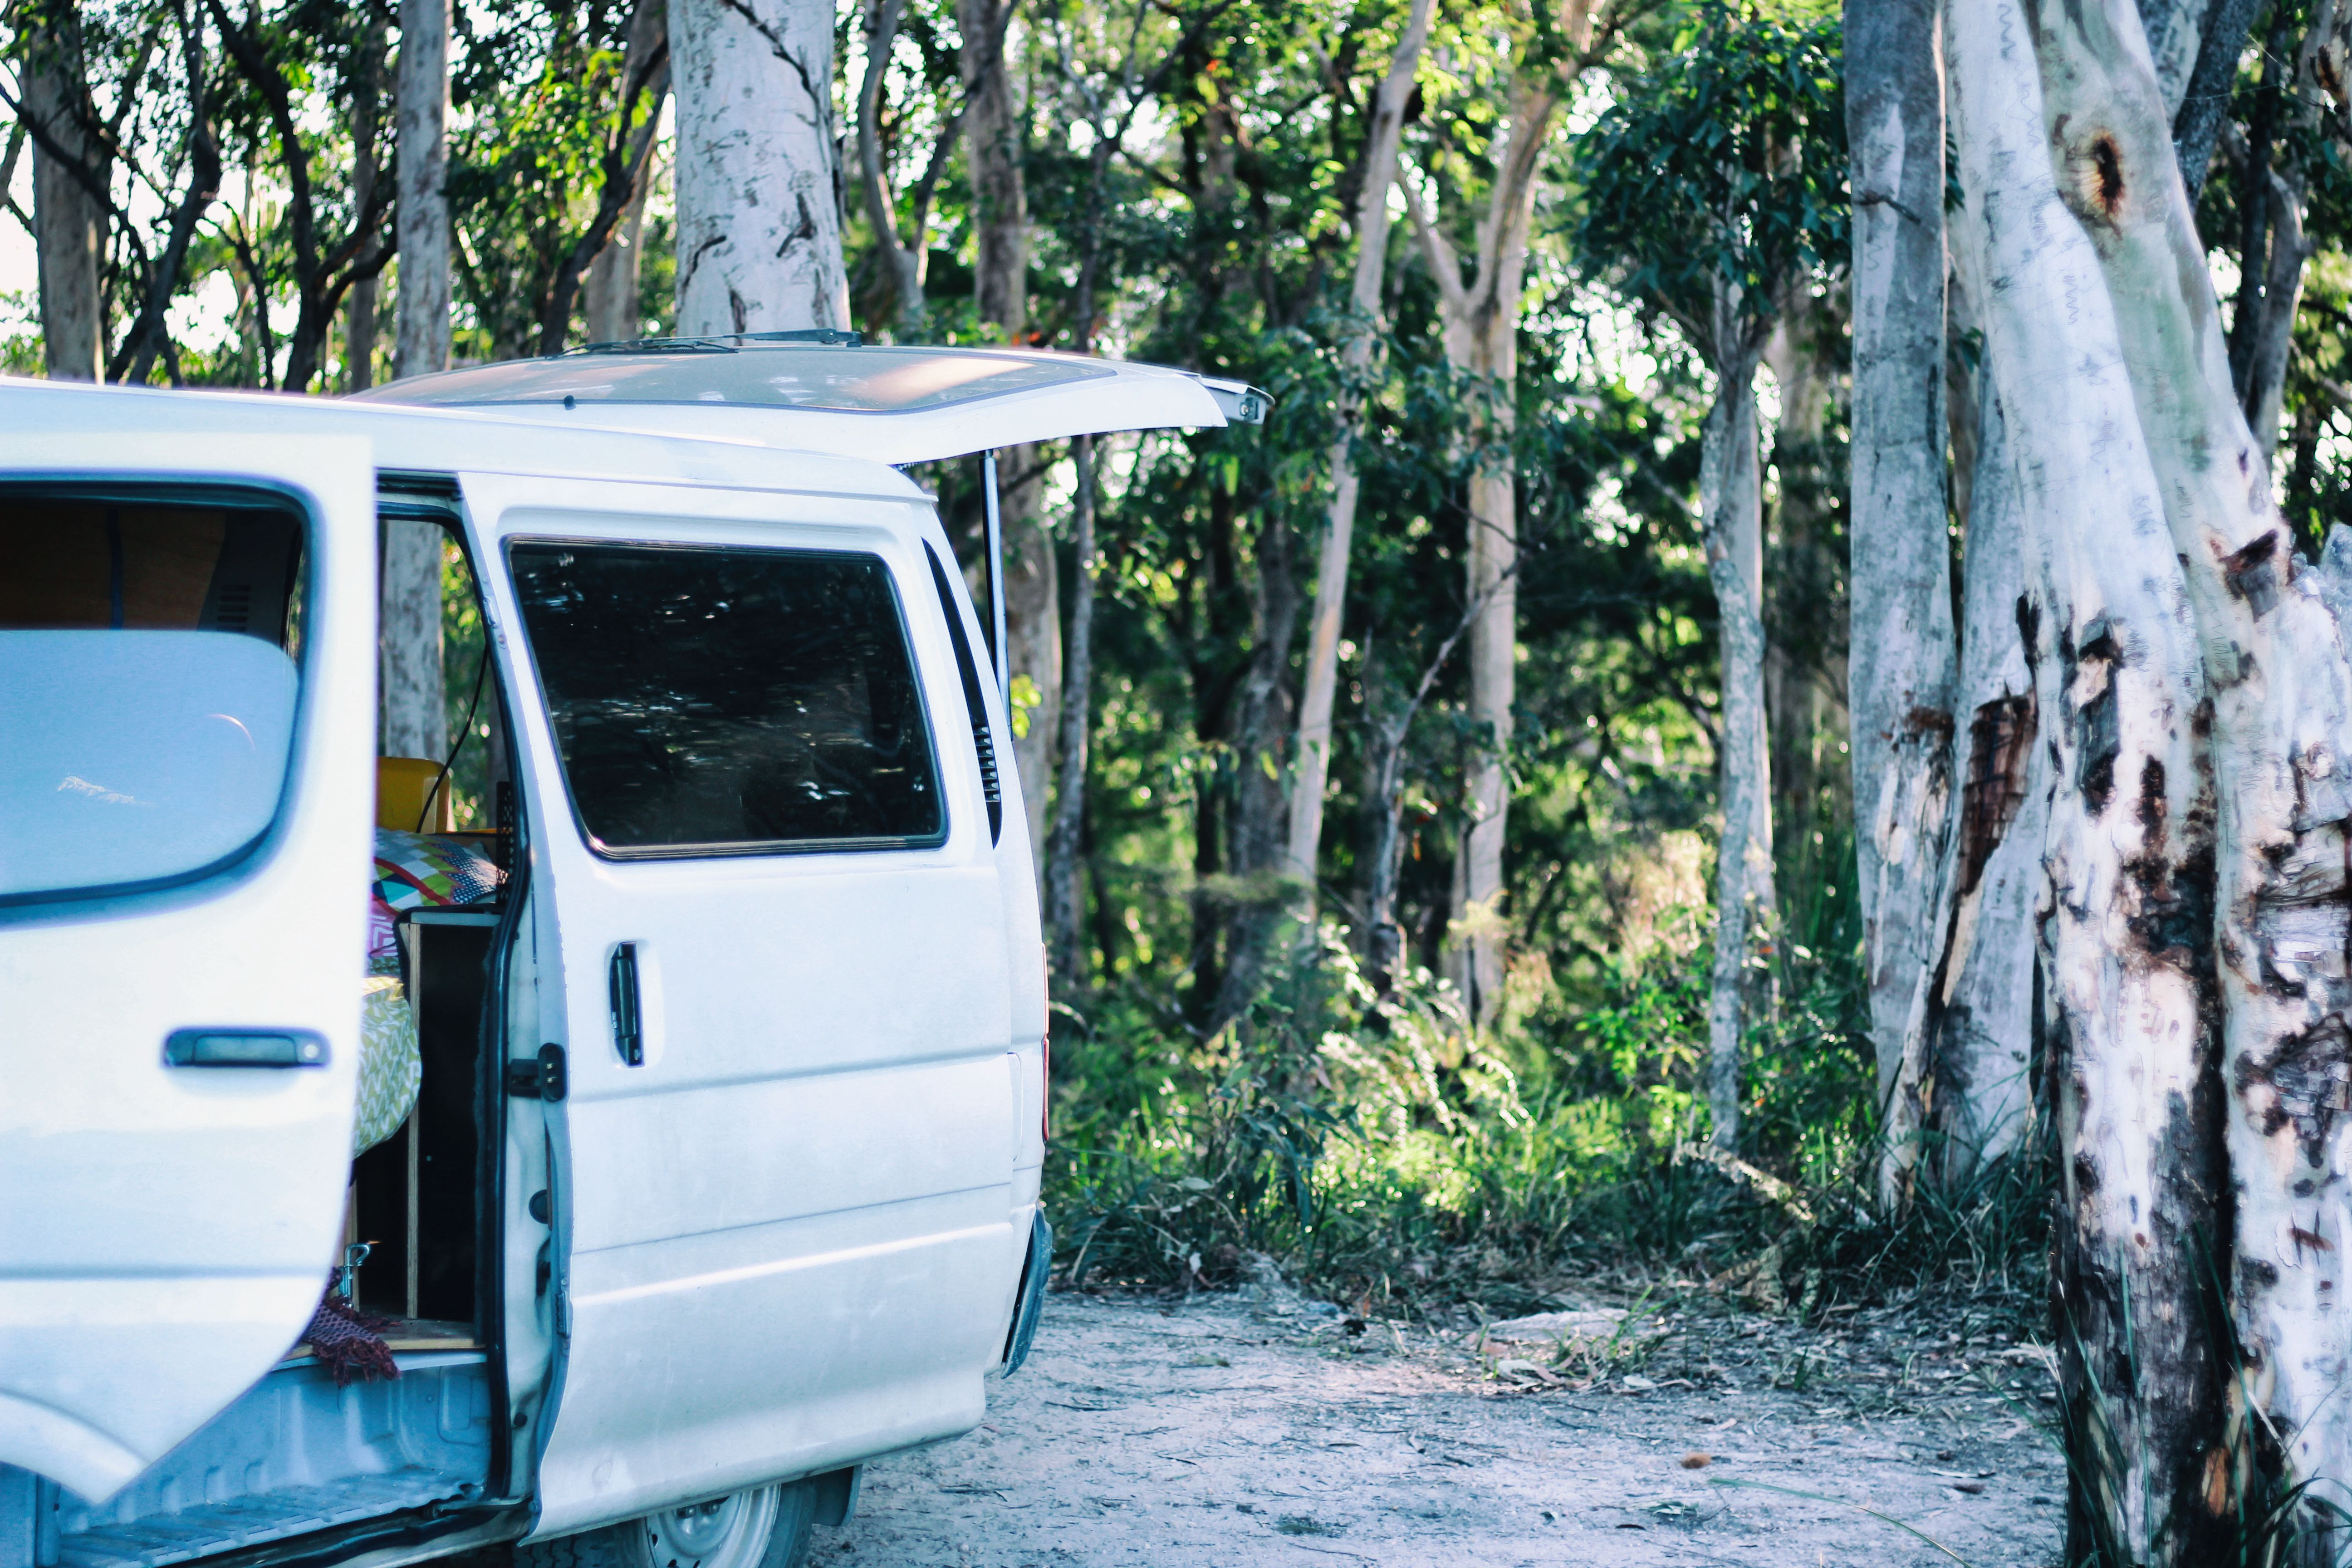 Single vanlife digital nomad - Sacky from SUP Board Guide